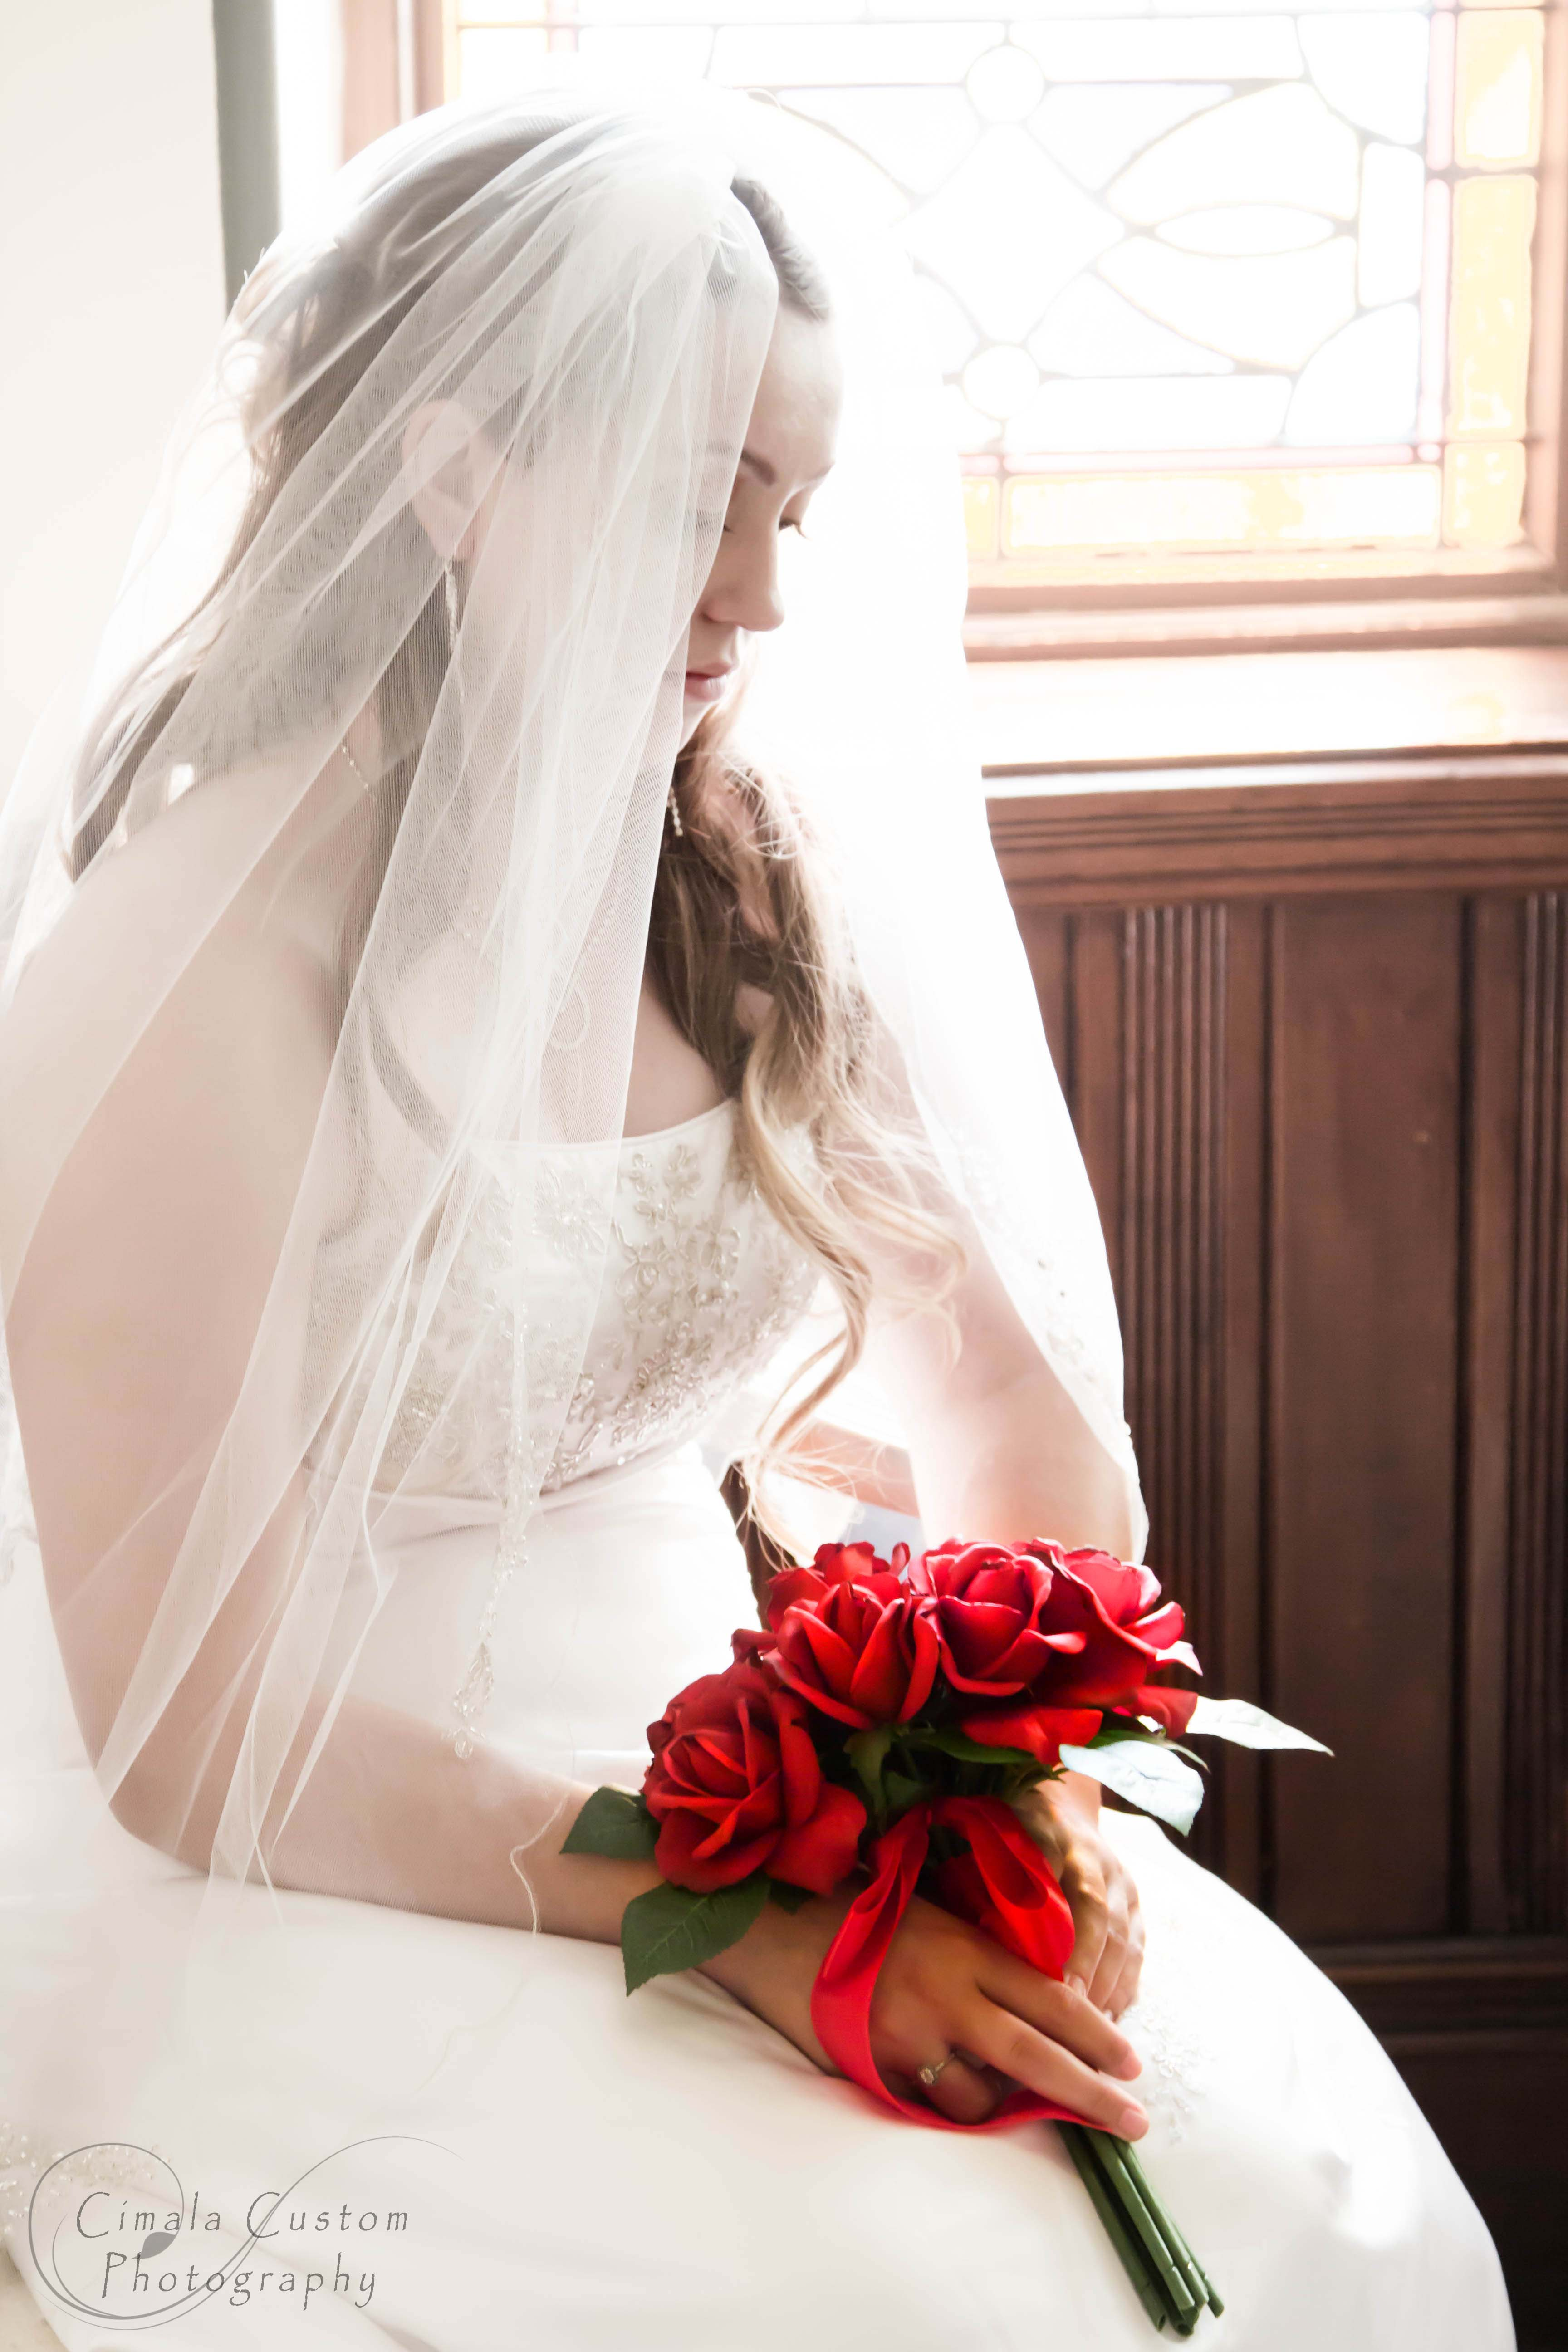 Athereal Bride